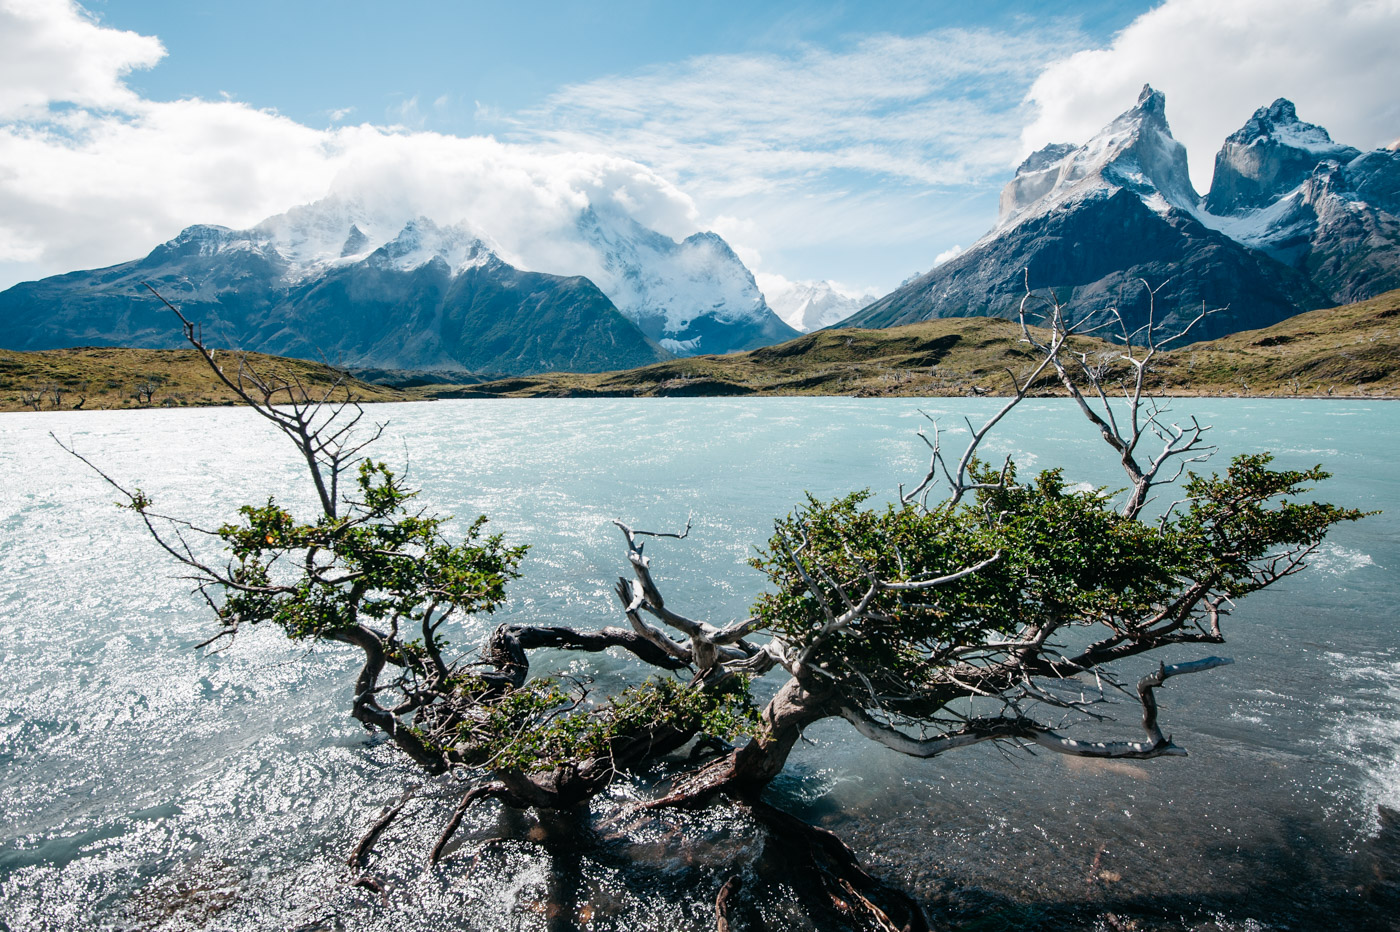 Torres del Paine with a tree in the foreground